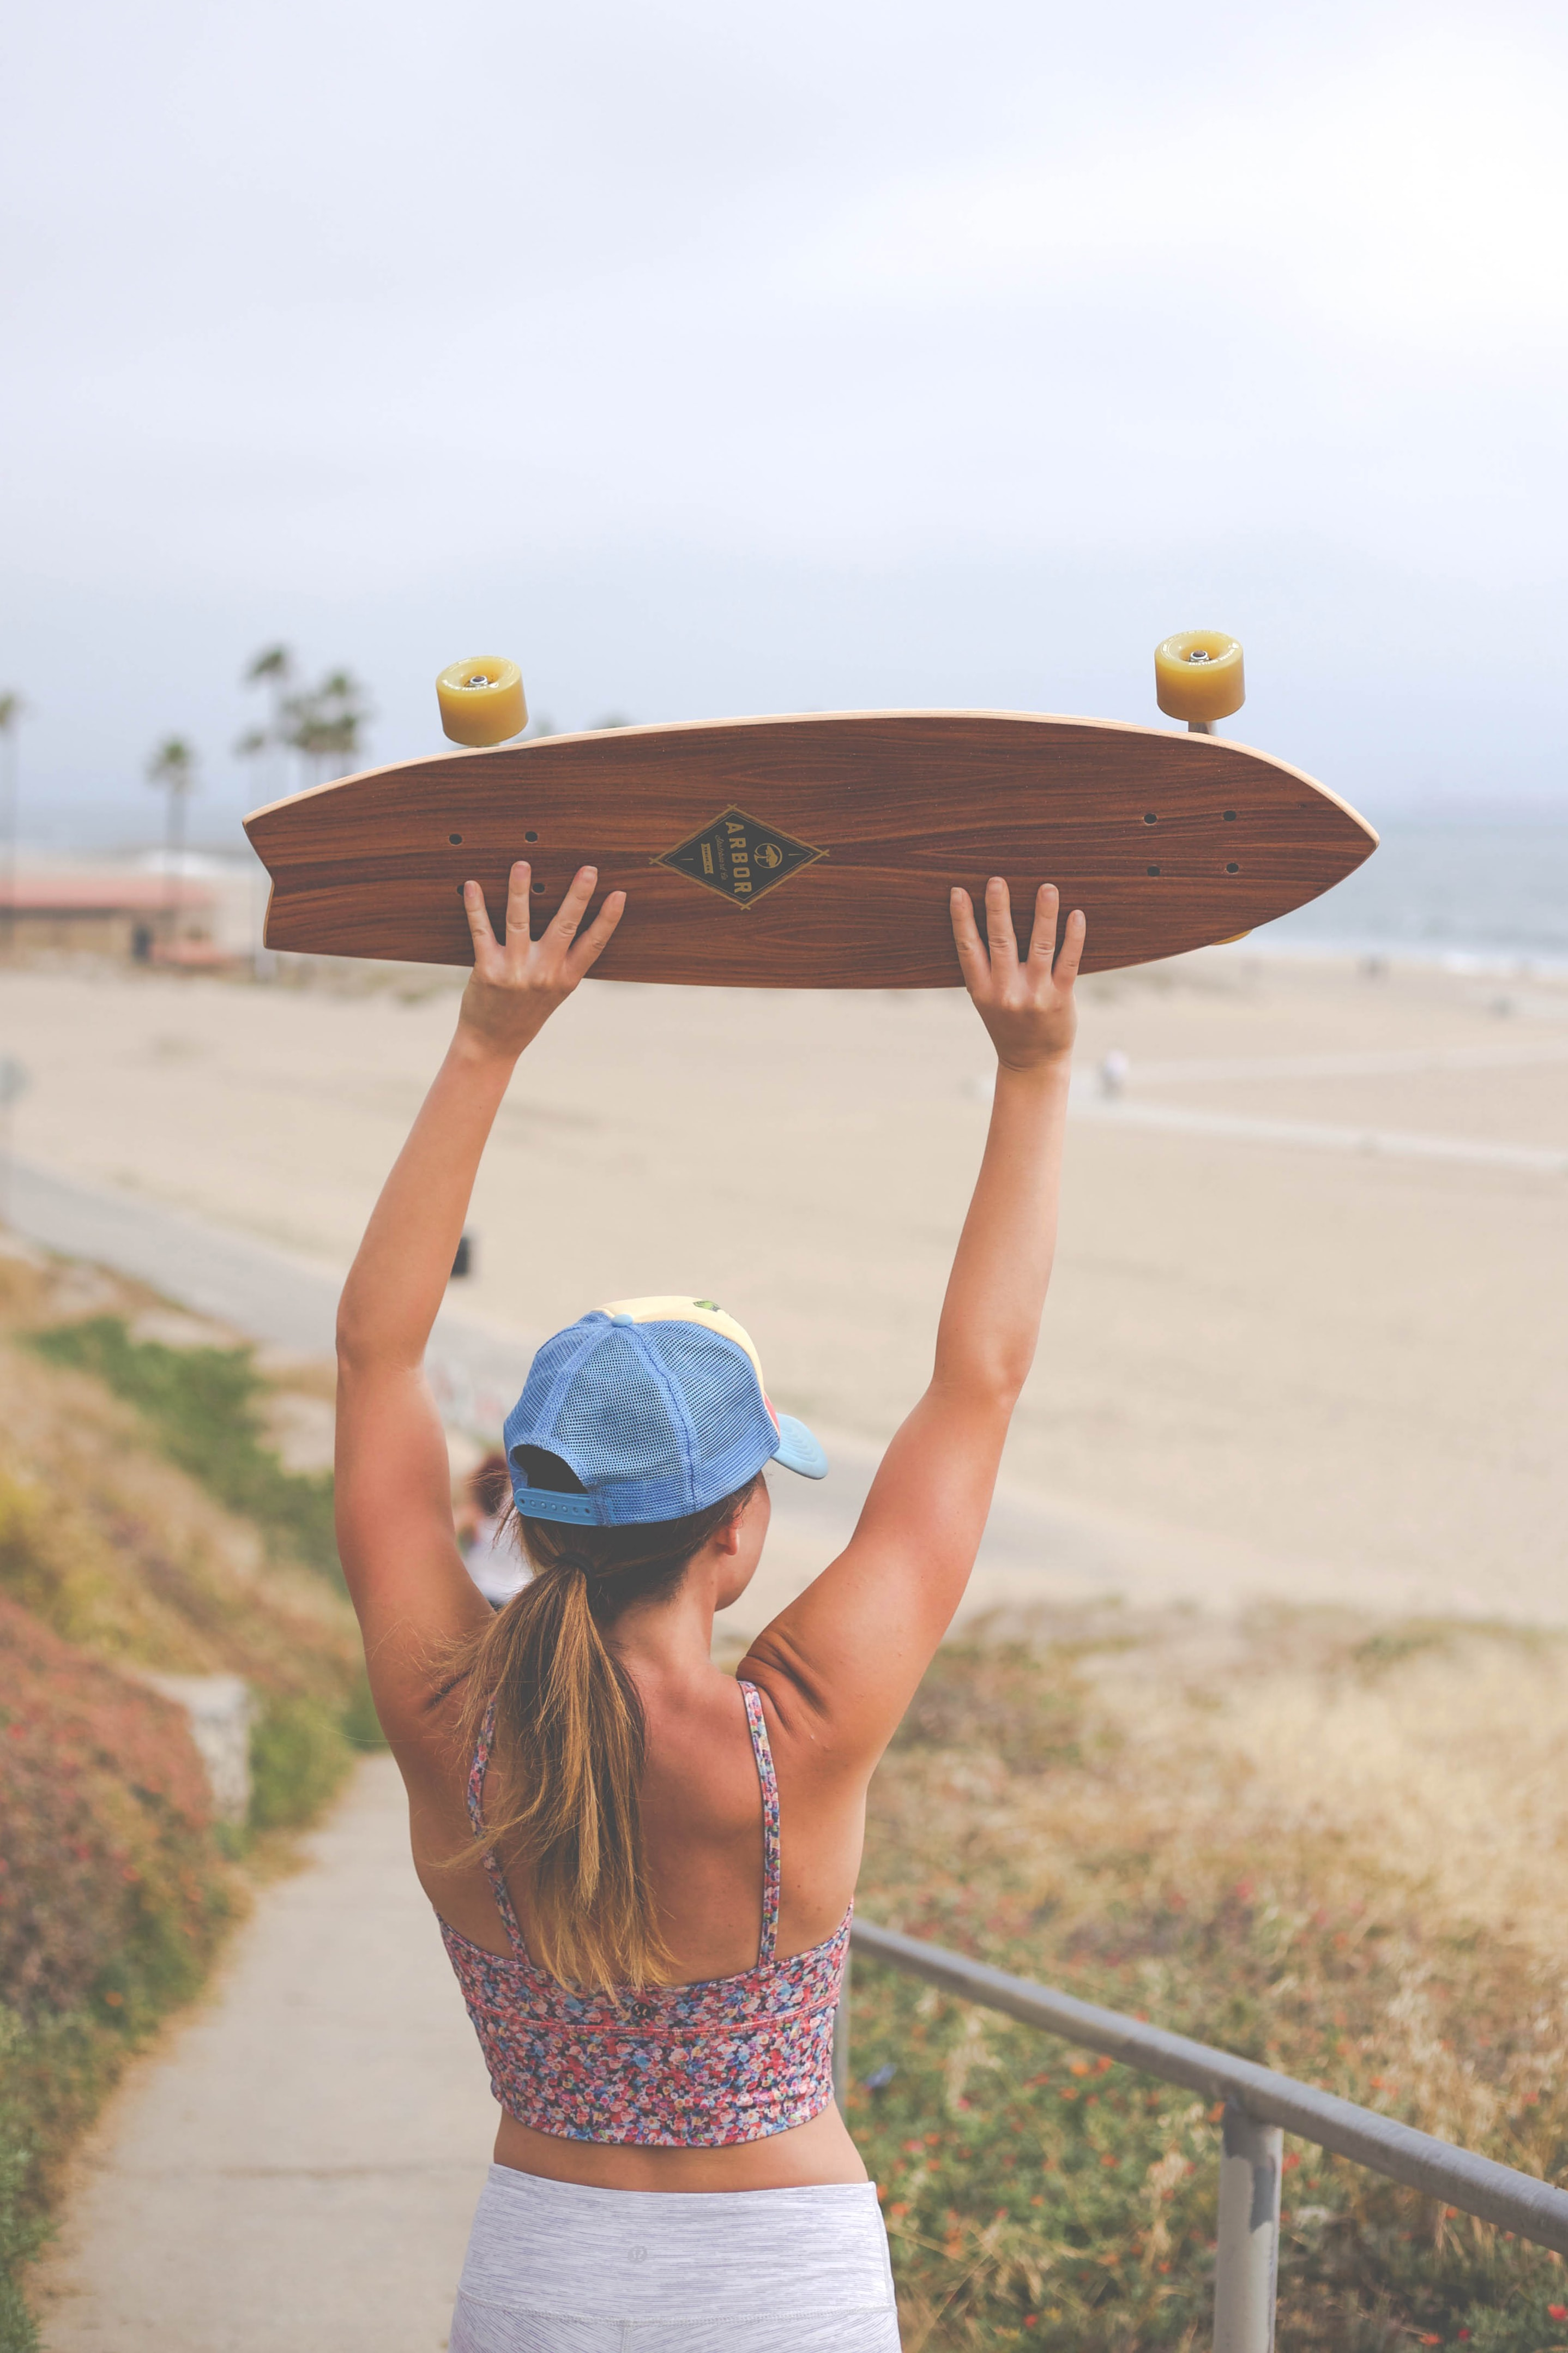 Woman holding skateboard above her head at the Playa del Rey beach